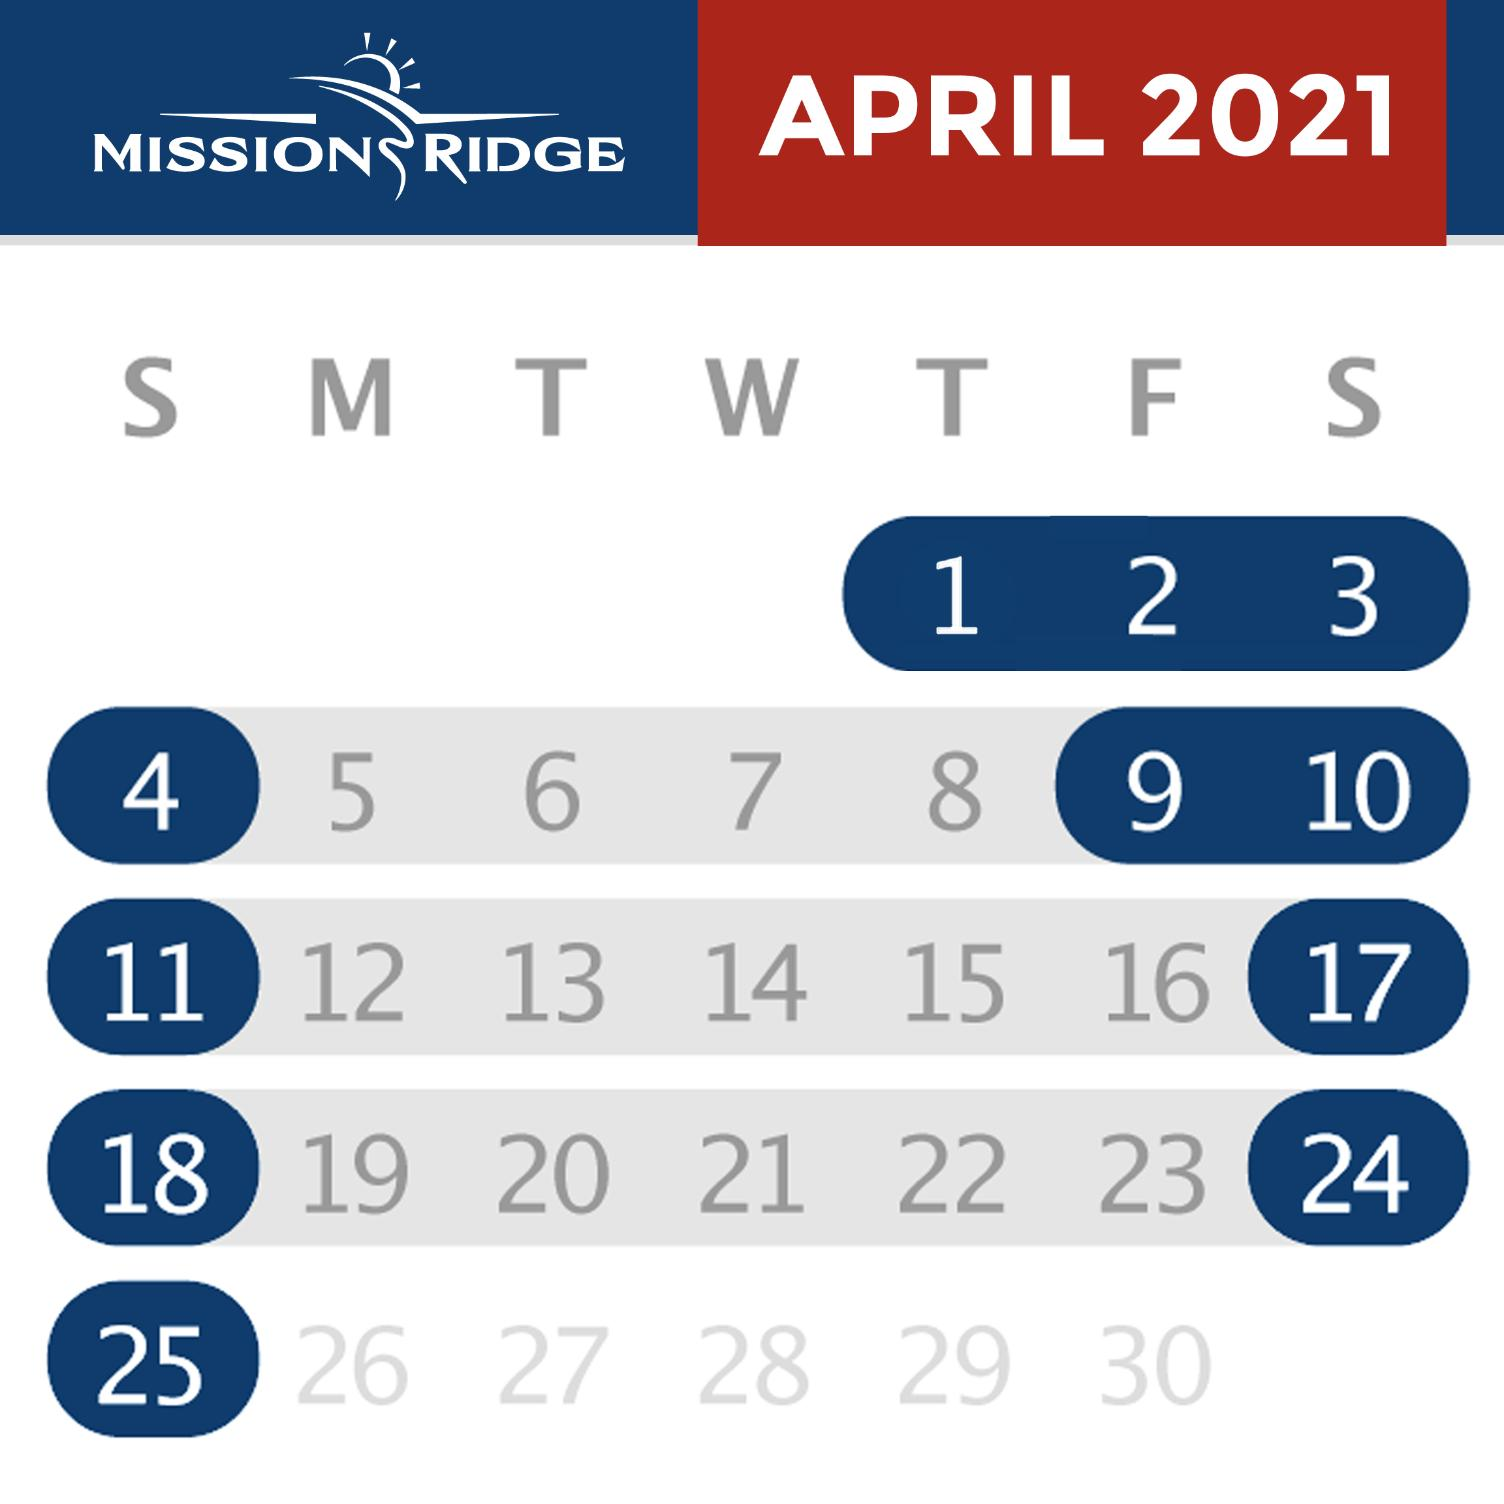 April Calendar with open days highlighted